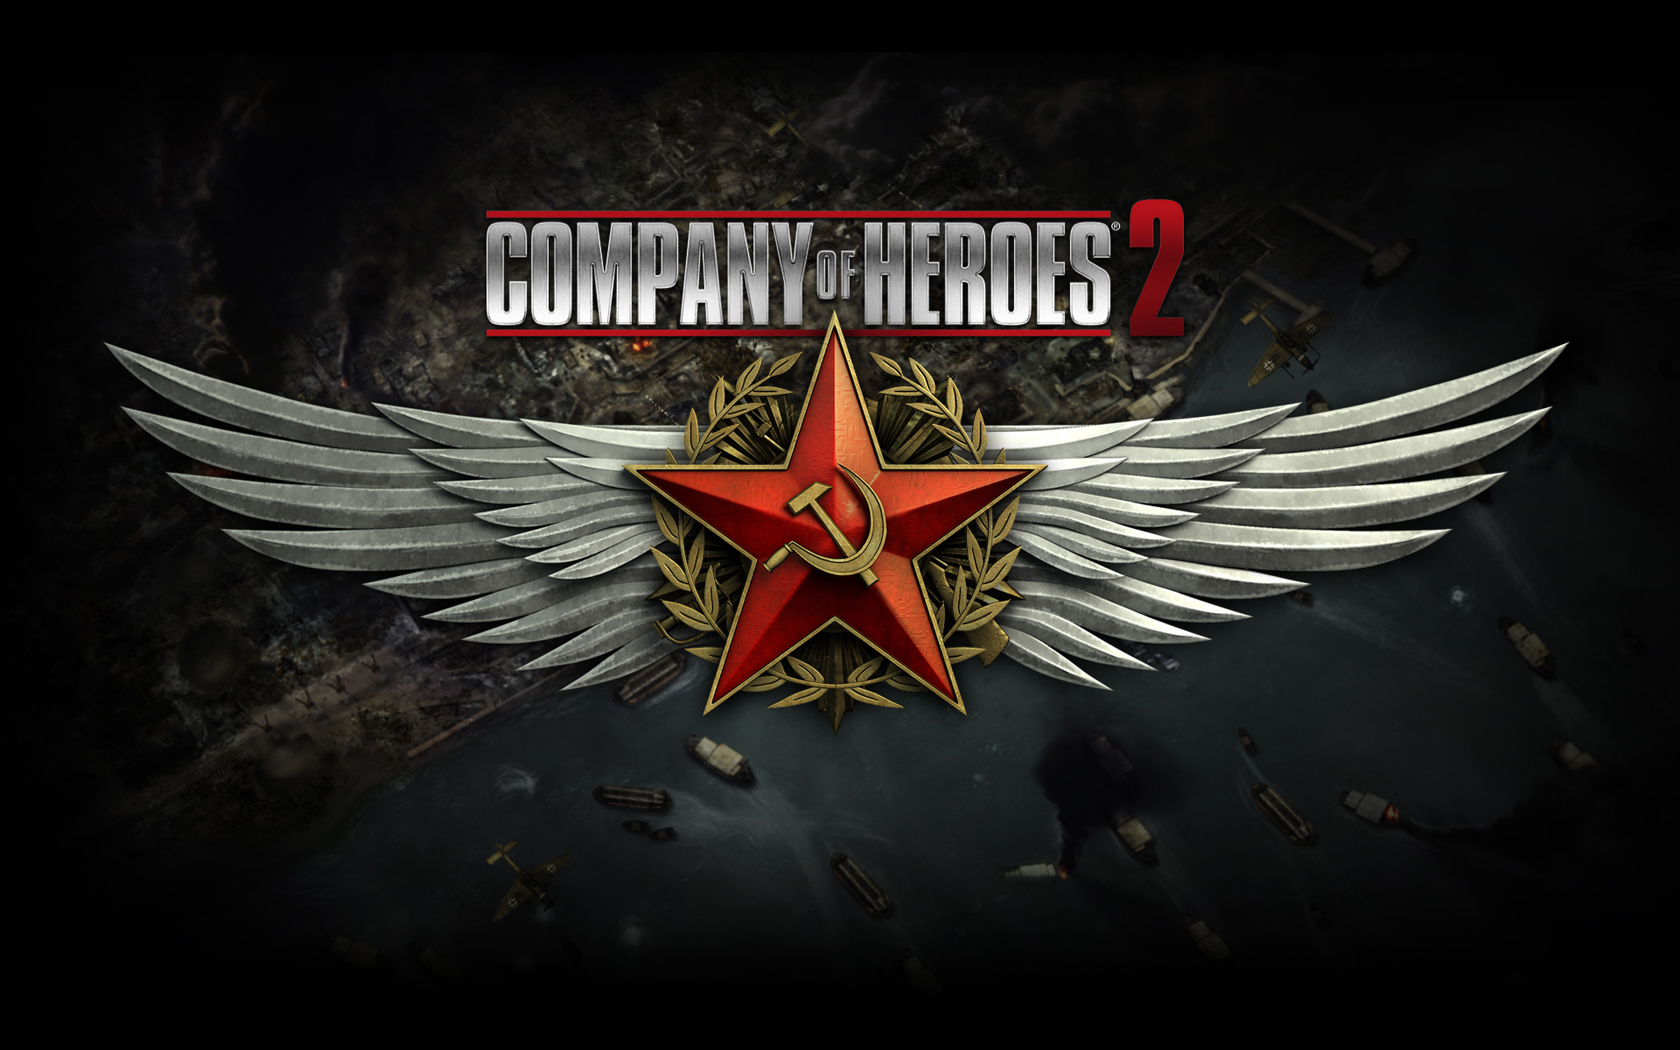 Company of Heroes 2 Video Game Wallpapers HD Wallpapers 1680x1050